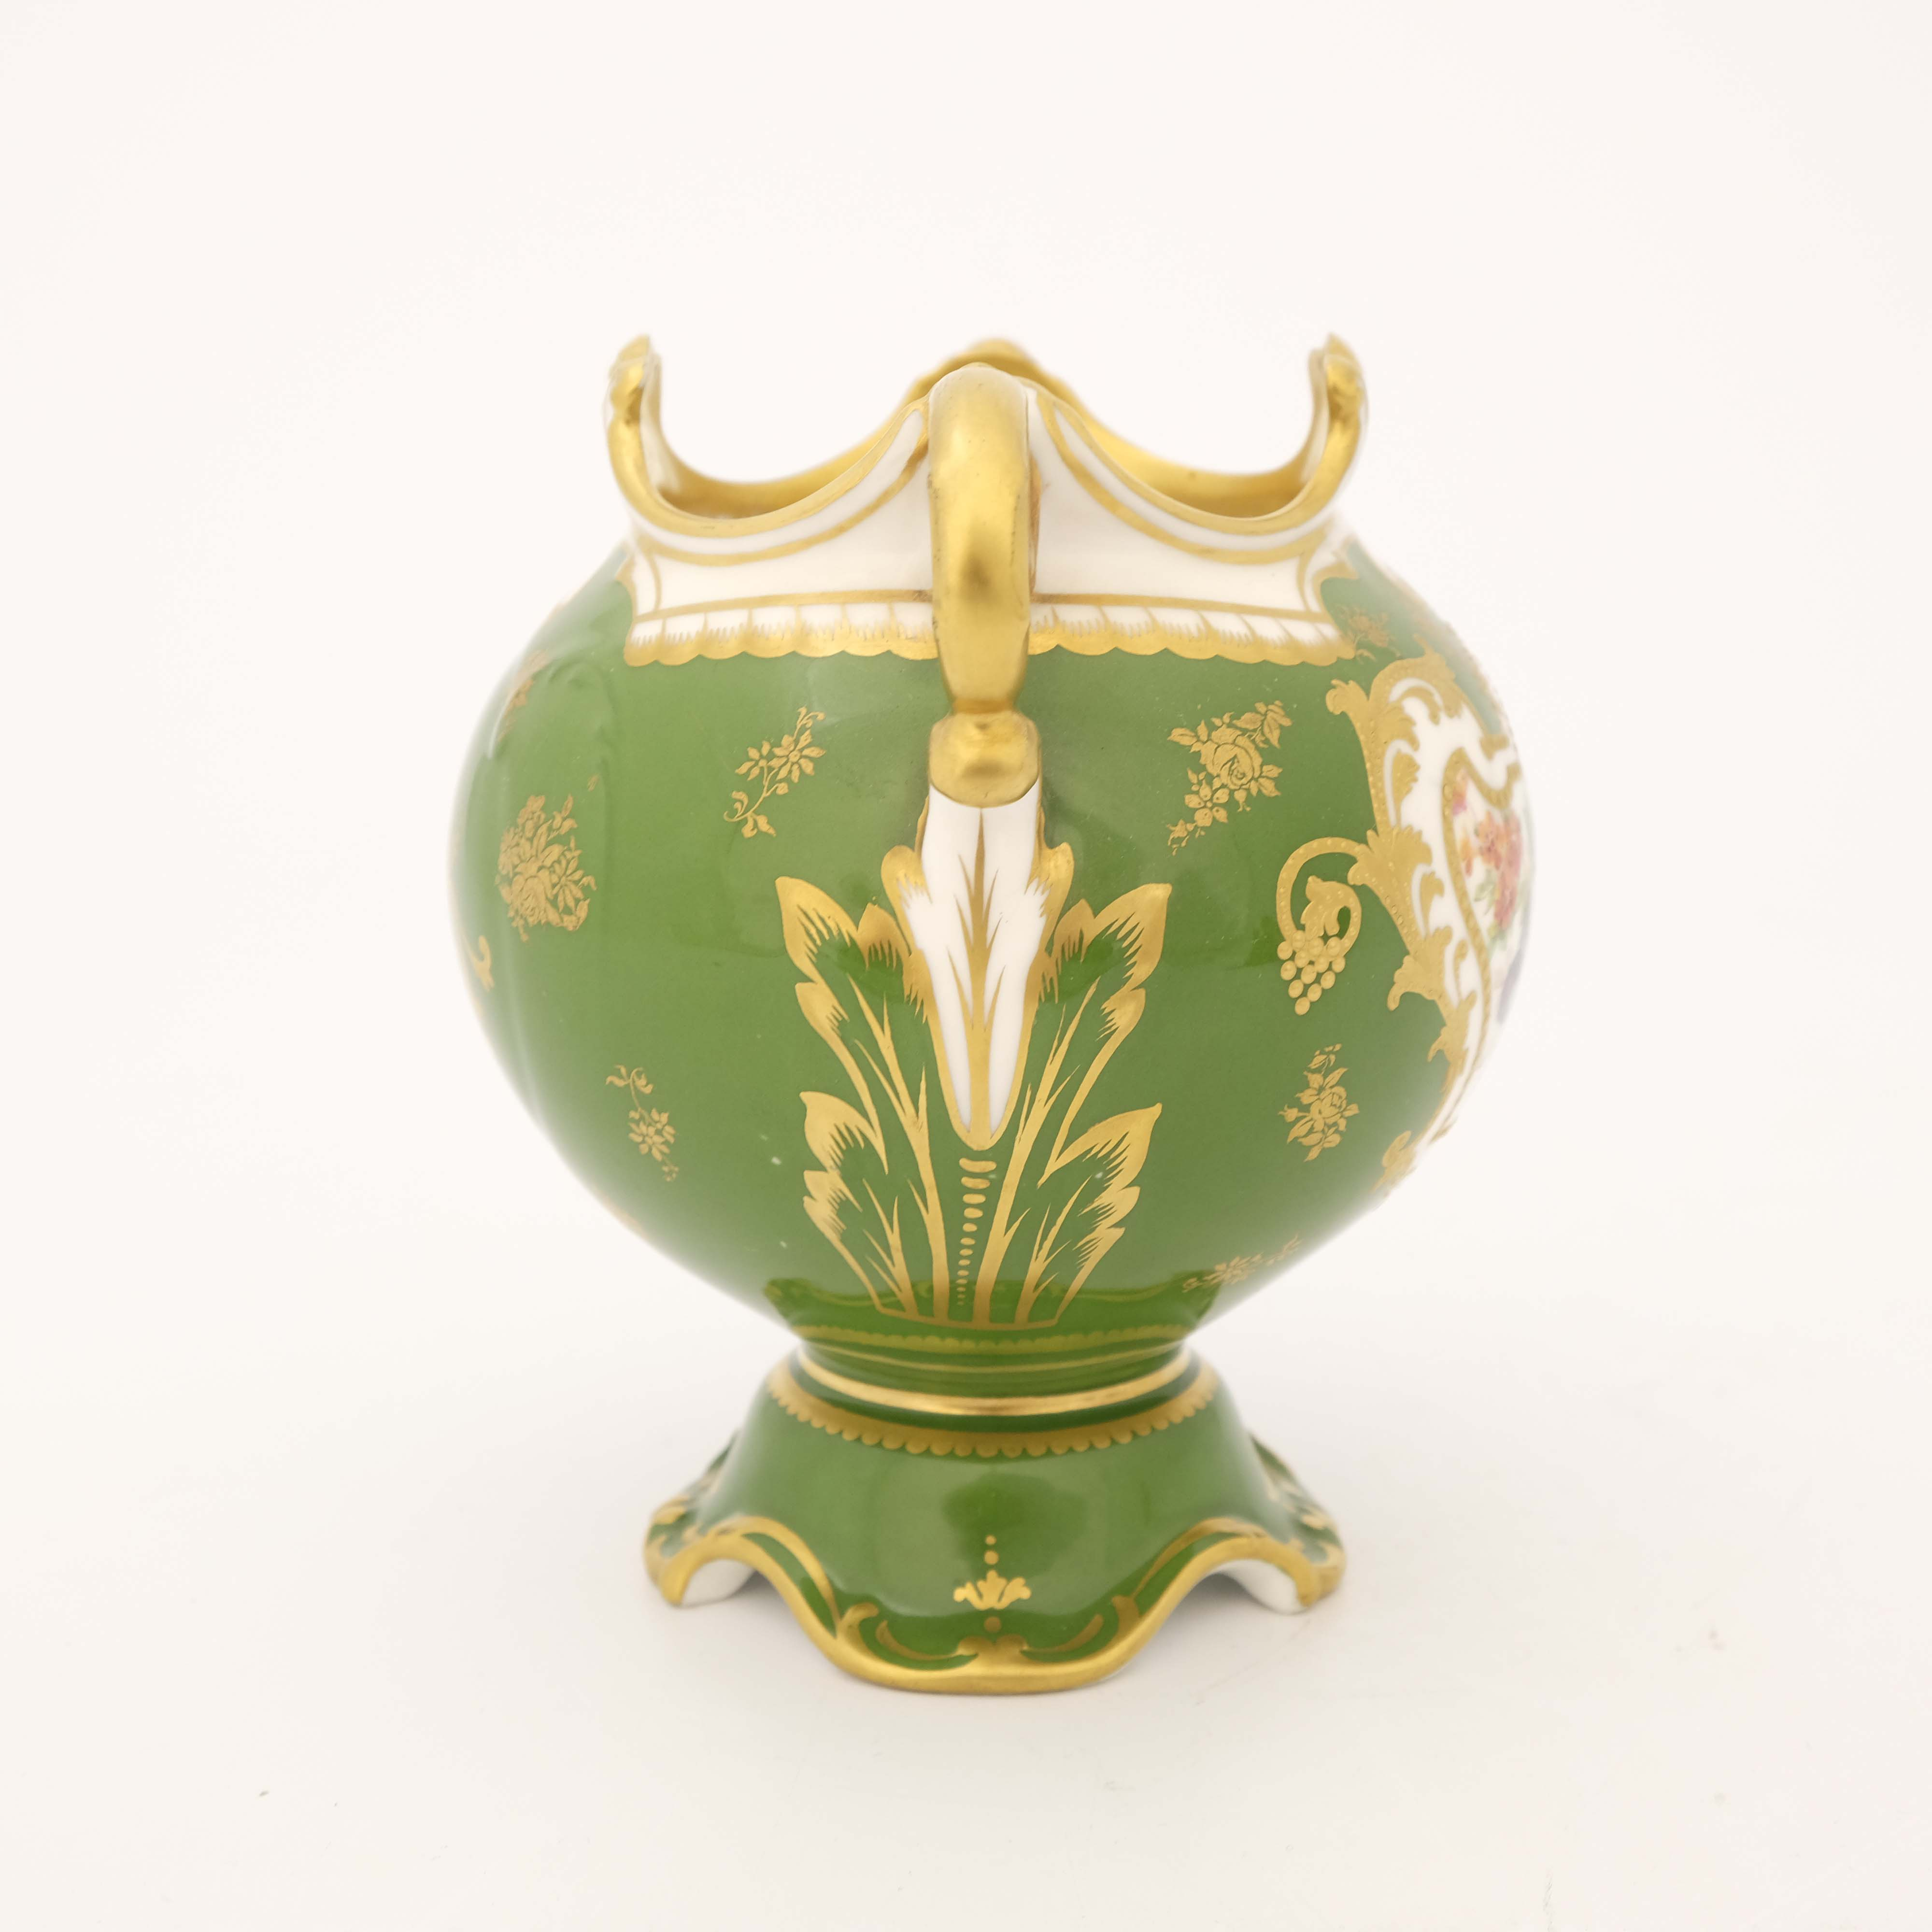 Edwin Wood for Royal Doulton, a floral painted twin handled vase - Image 2 of 7